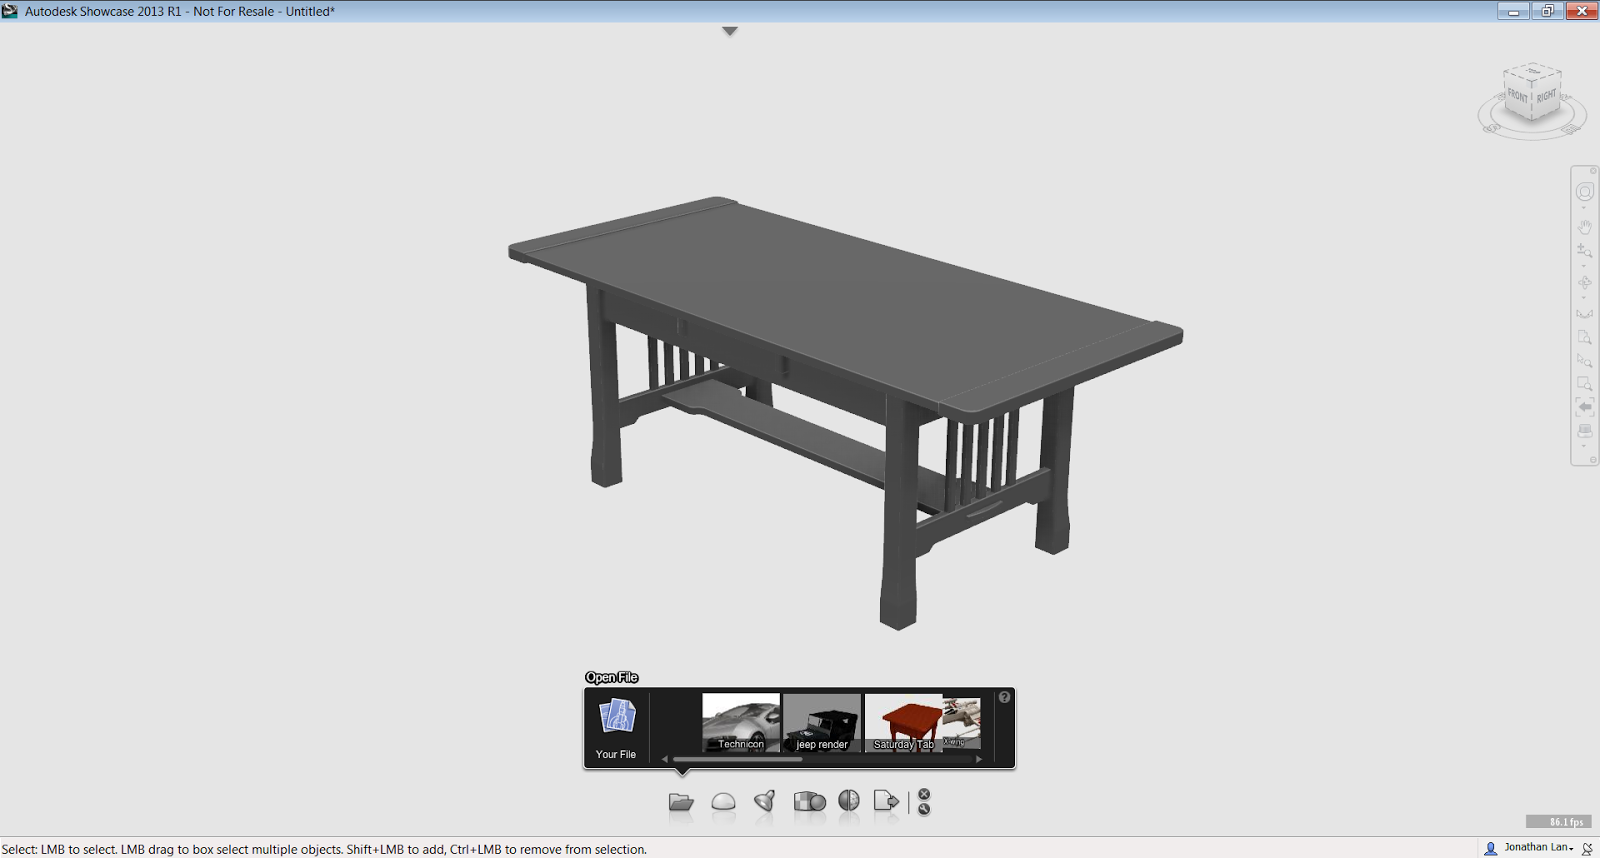 The model is imported and ready with the drawer closed